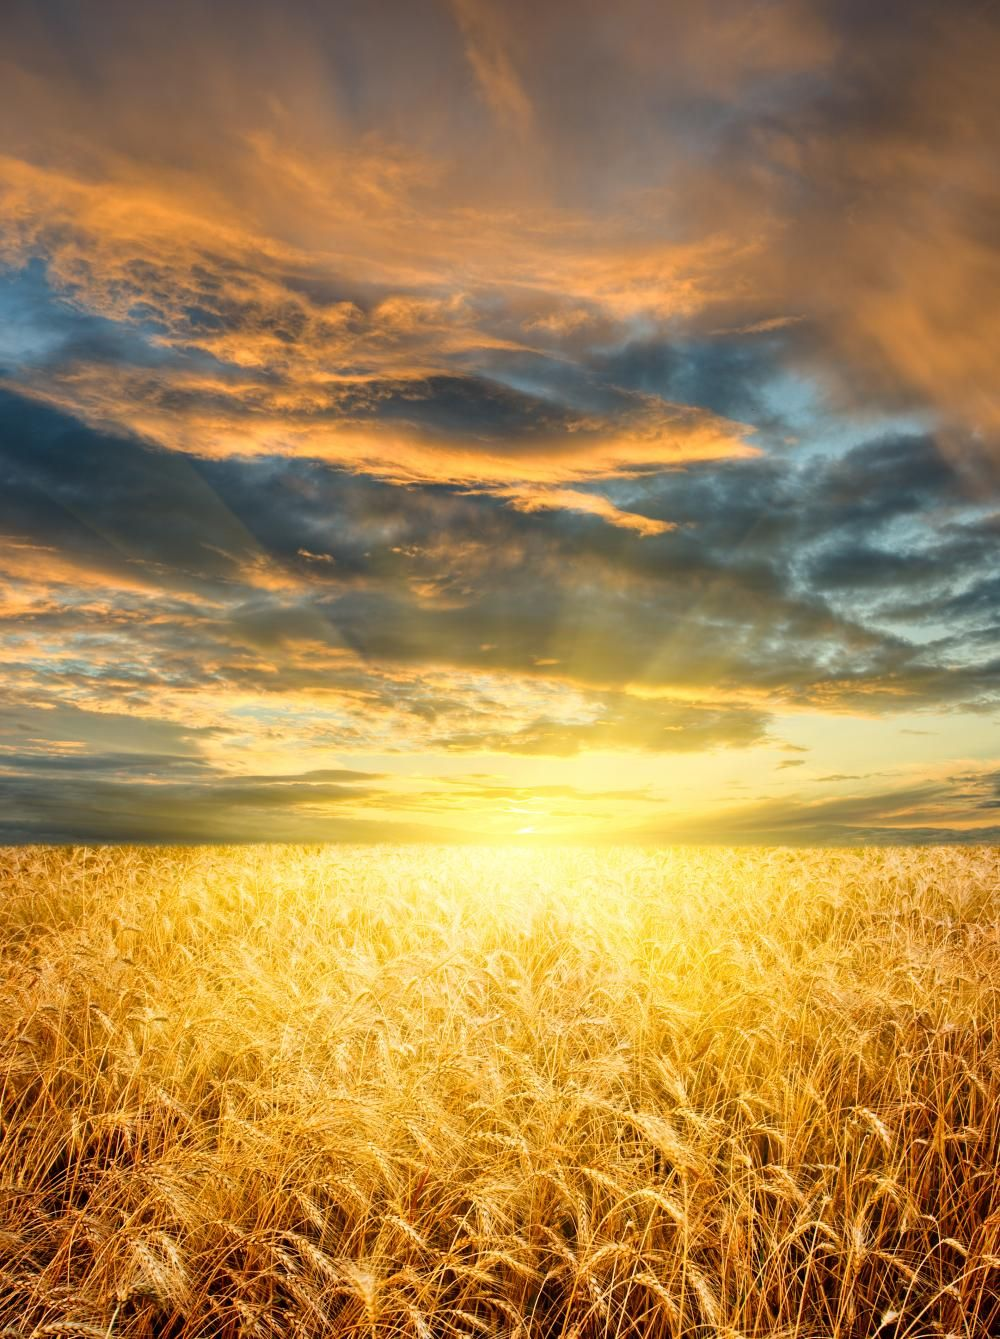 Amber Waves Of Grain Sunset Over A Wheat Field Nature